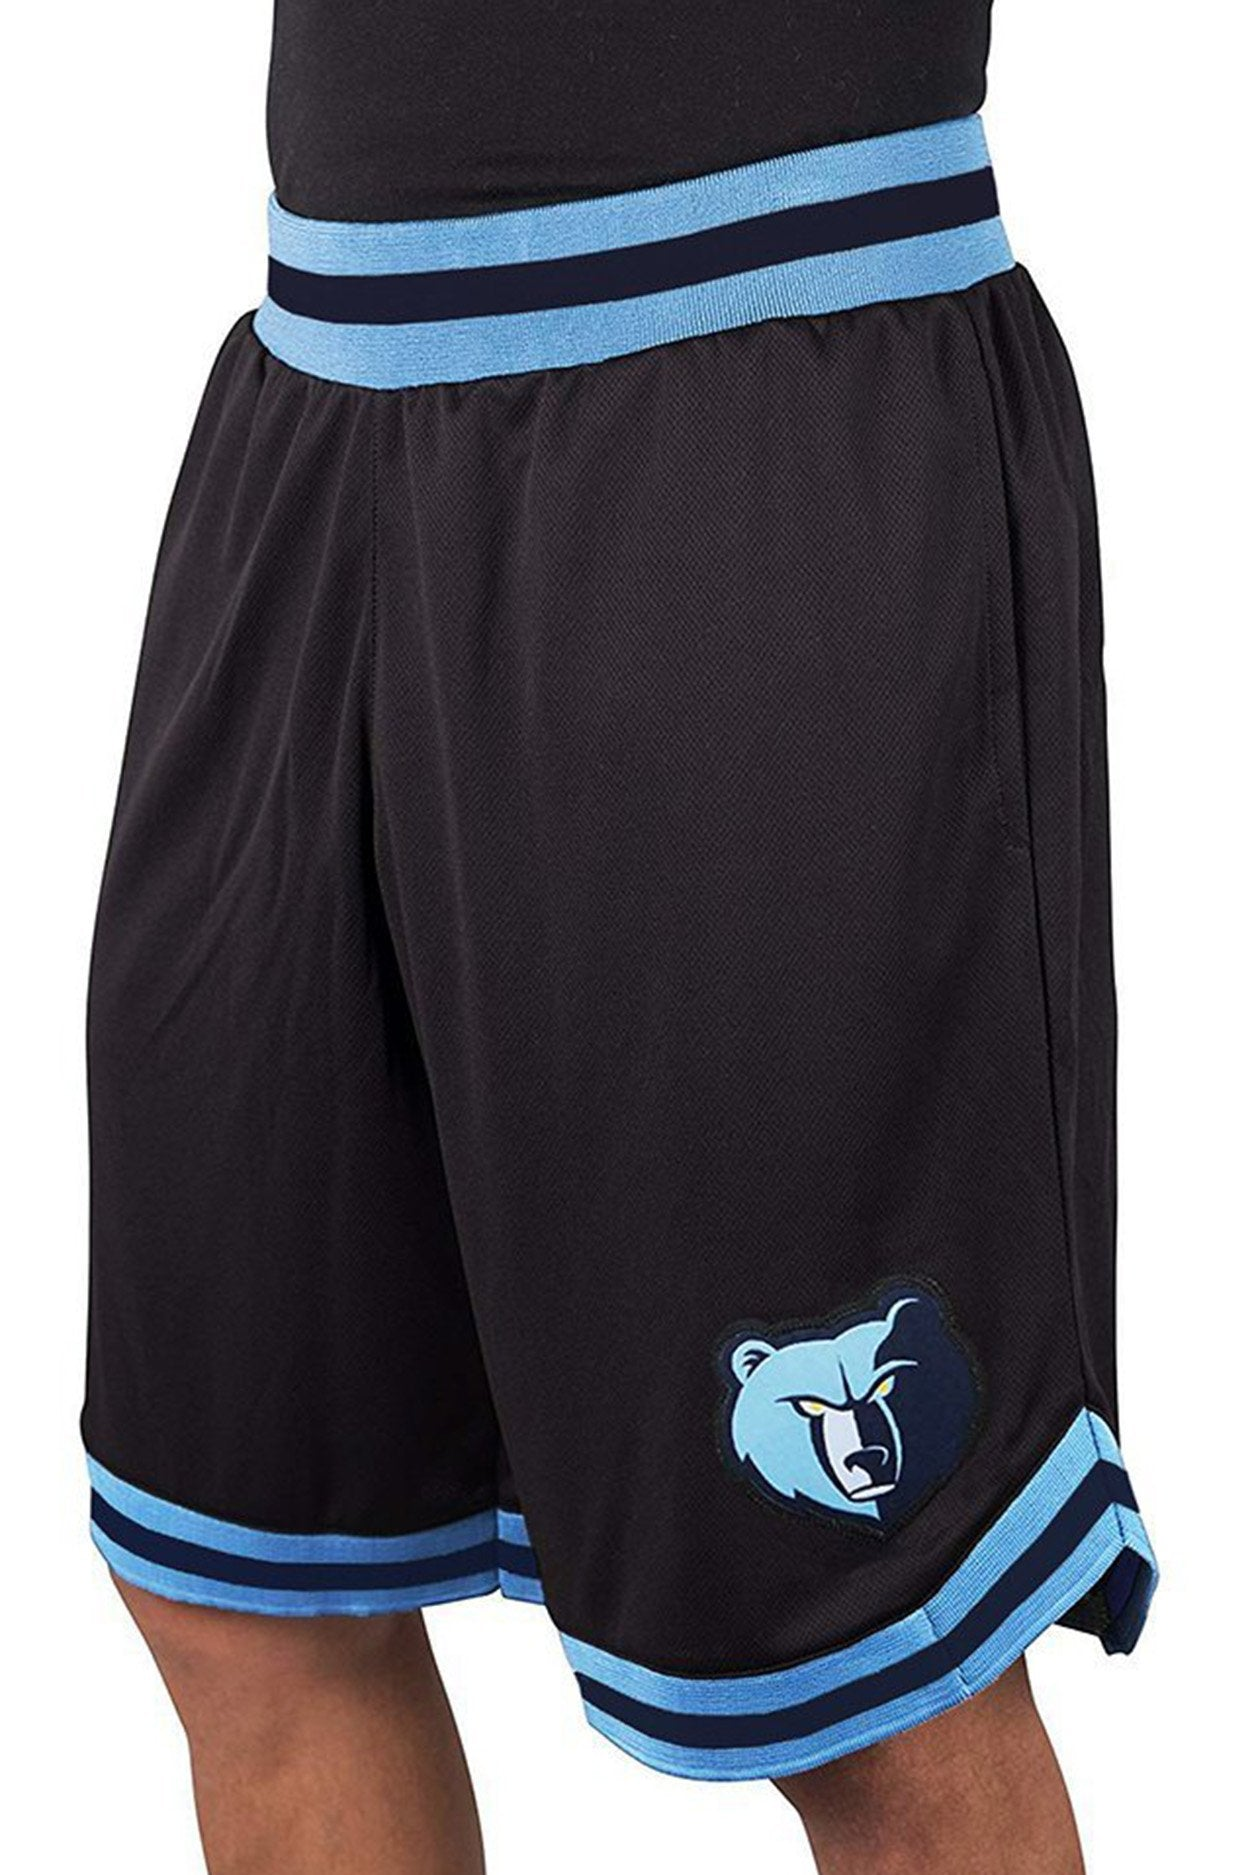 NBA Memphis Grizzlies Men's Basketball Shorts|Memphis Grizzlies